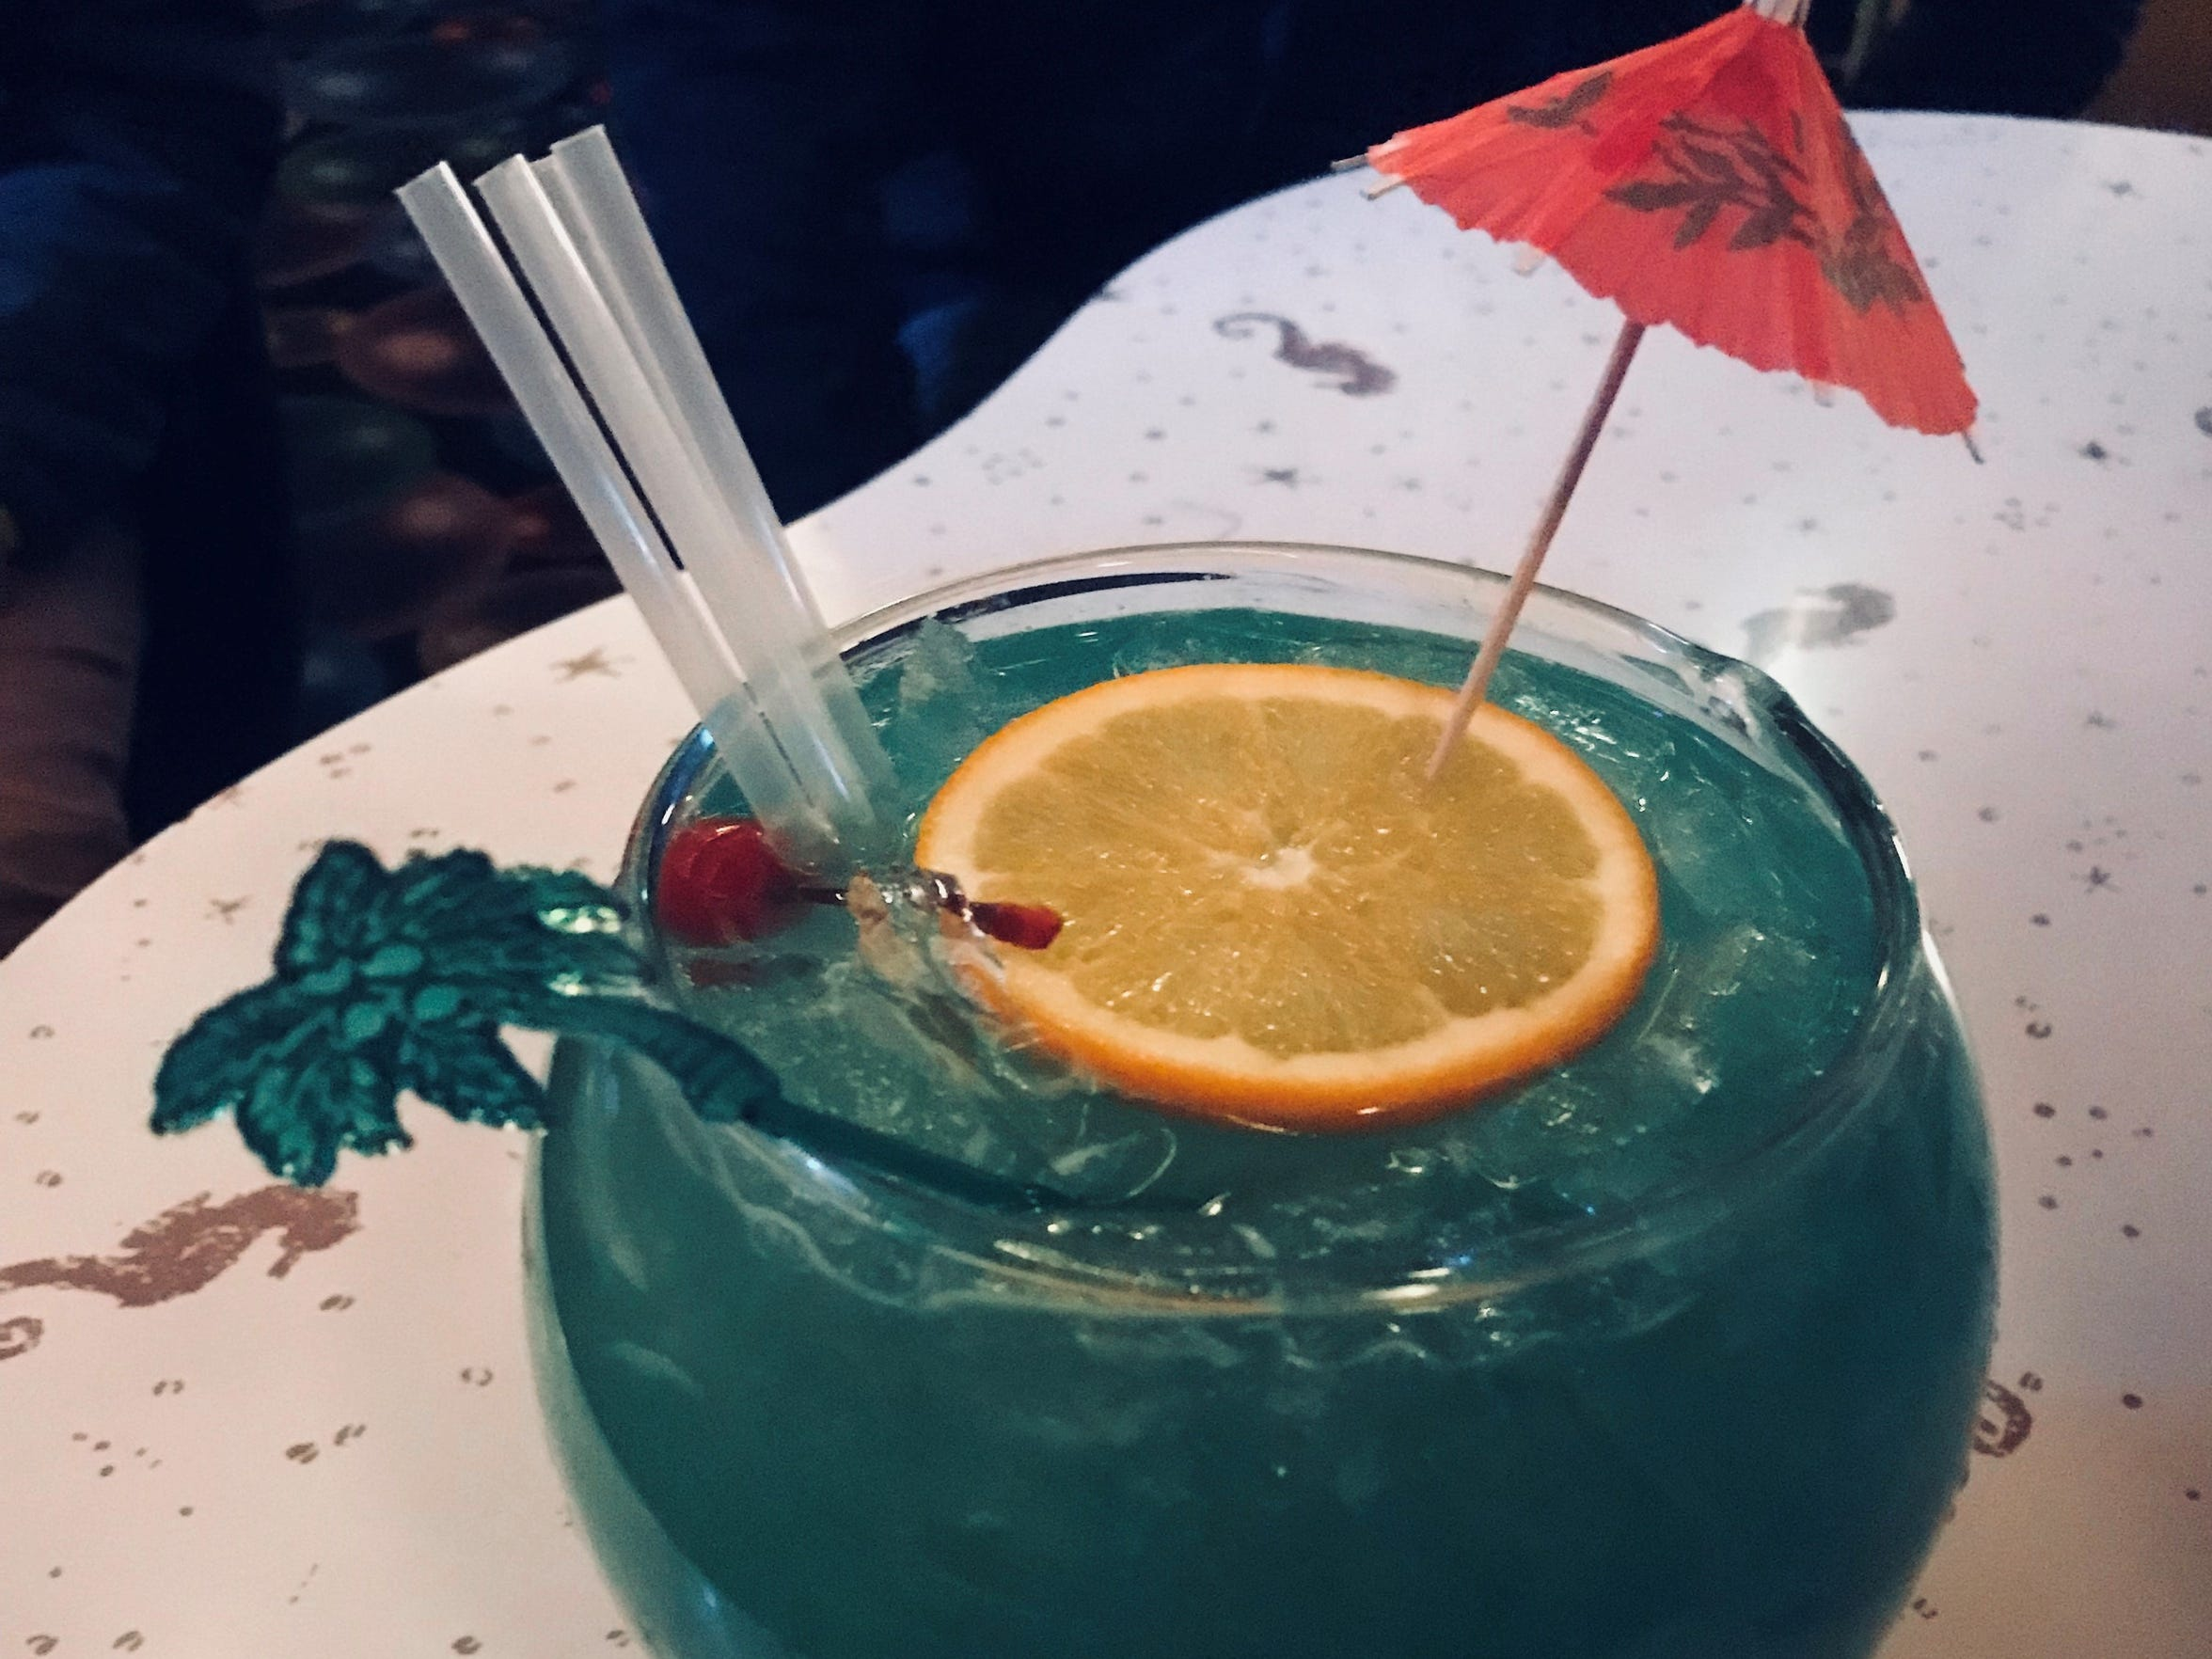 The Fishbowl at the Sip 'n Dip Lounge wins the greatest signature drink in Great Falls.